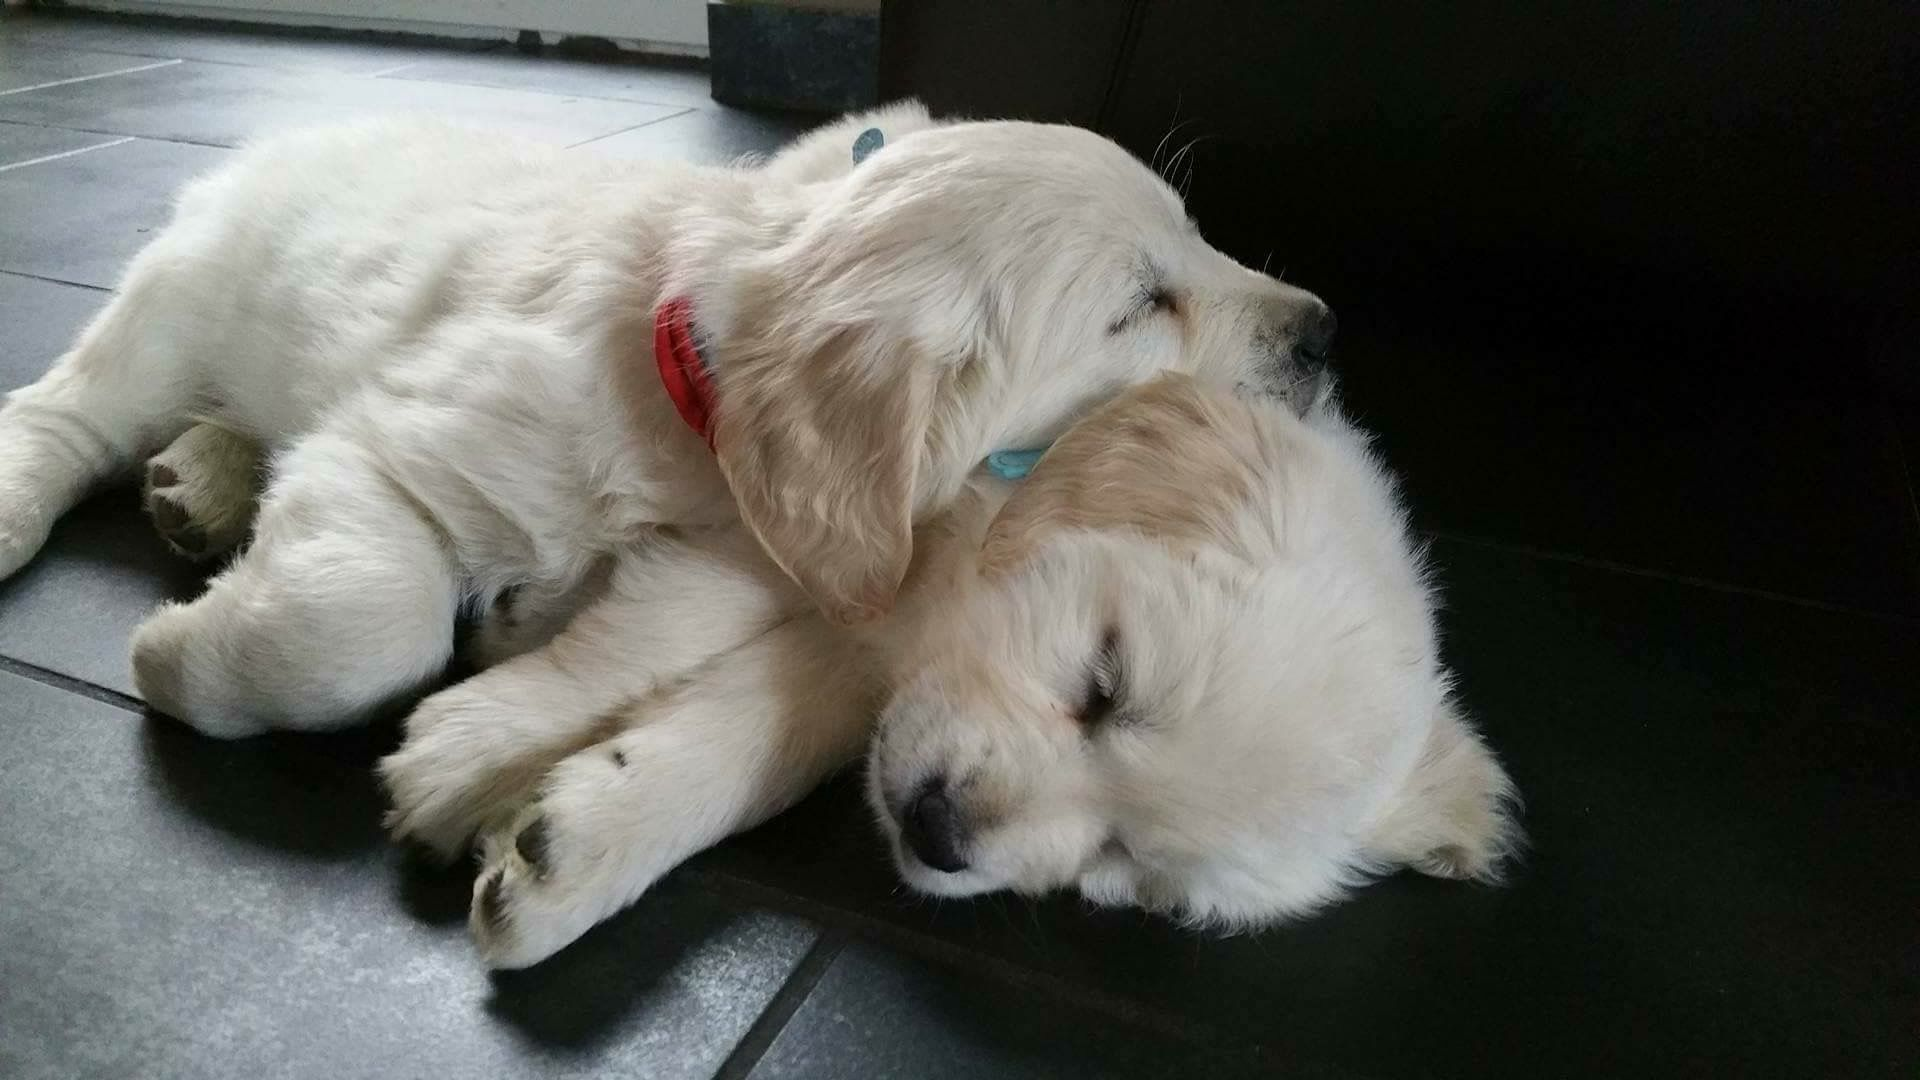 Missing Cute Dogs Puppies Cute Animals